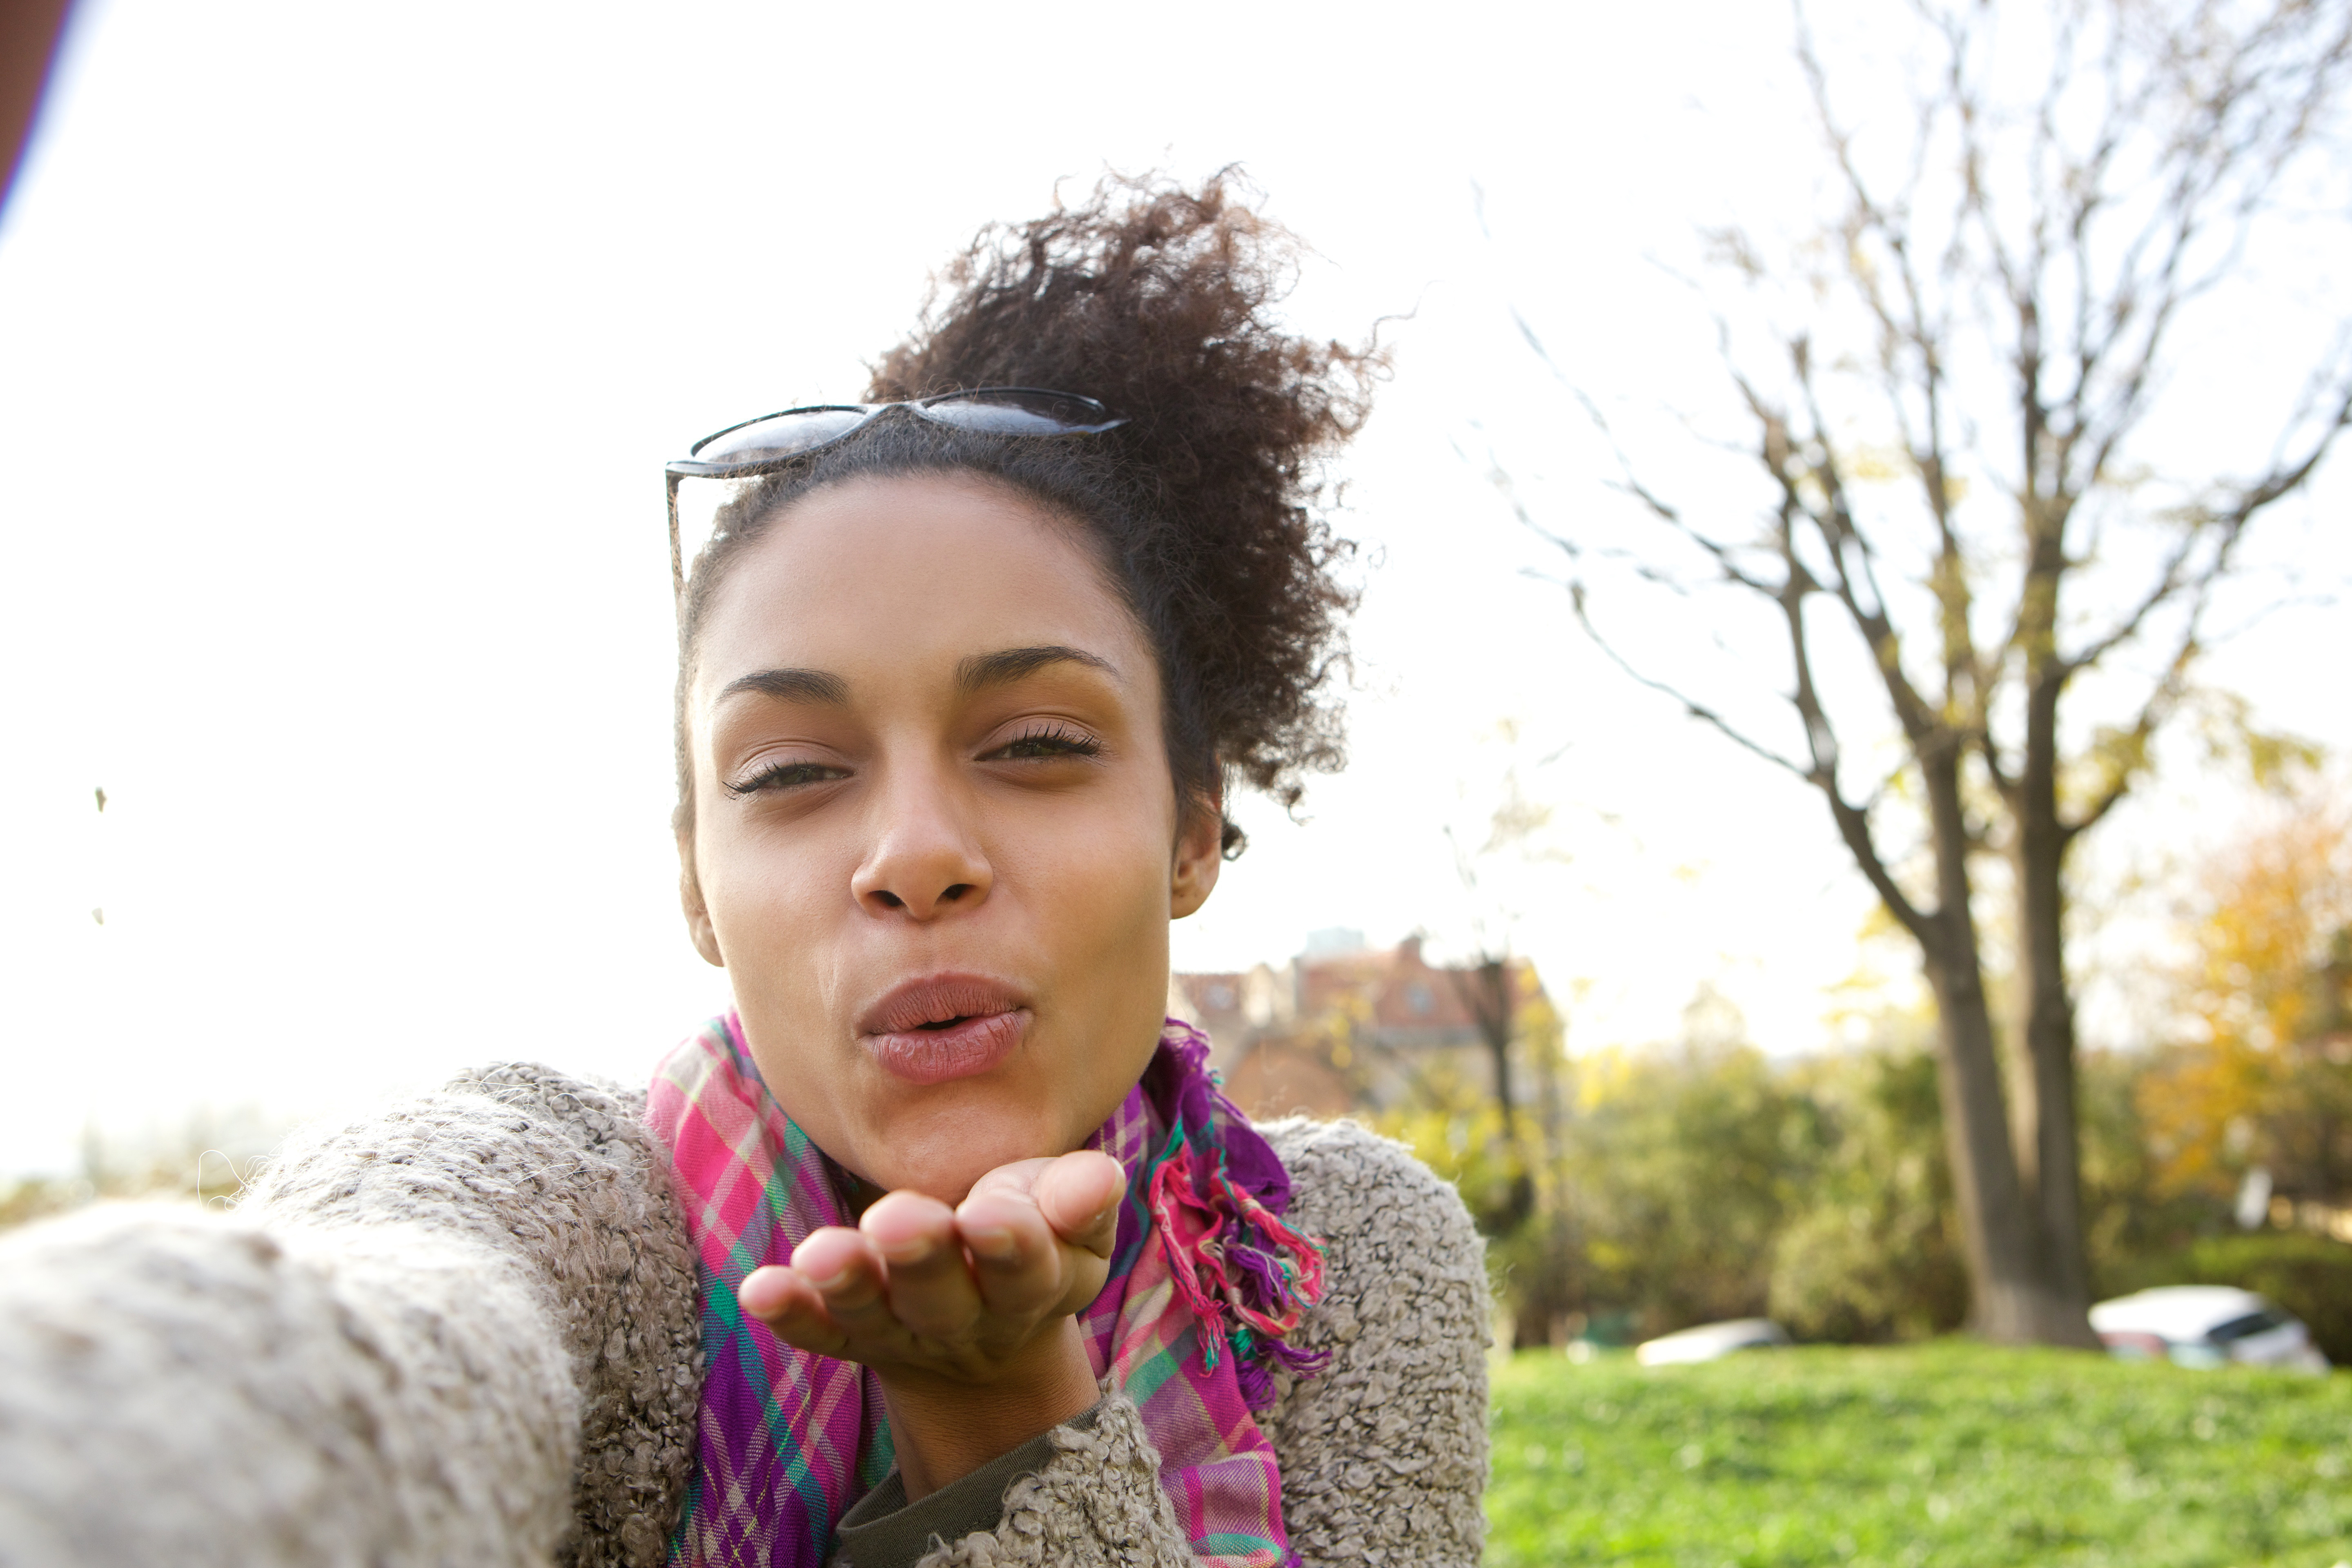 Selfie portrait of a young woman blowing a kiss